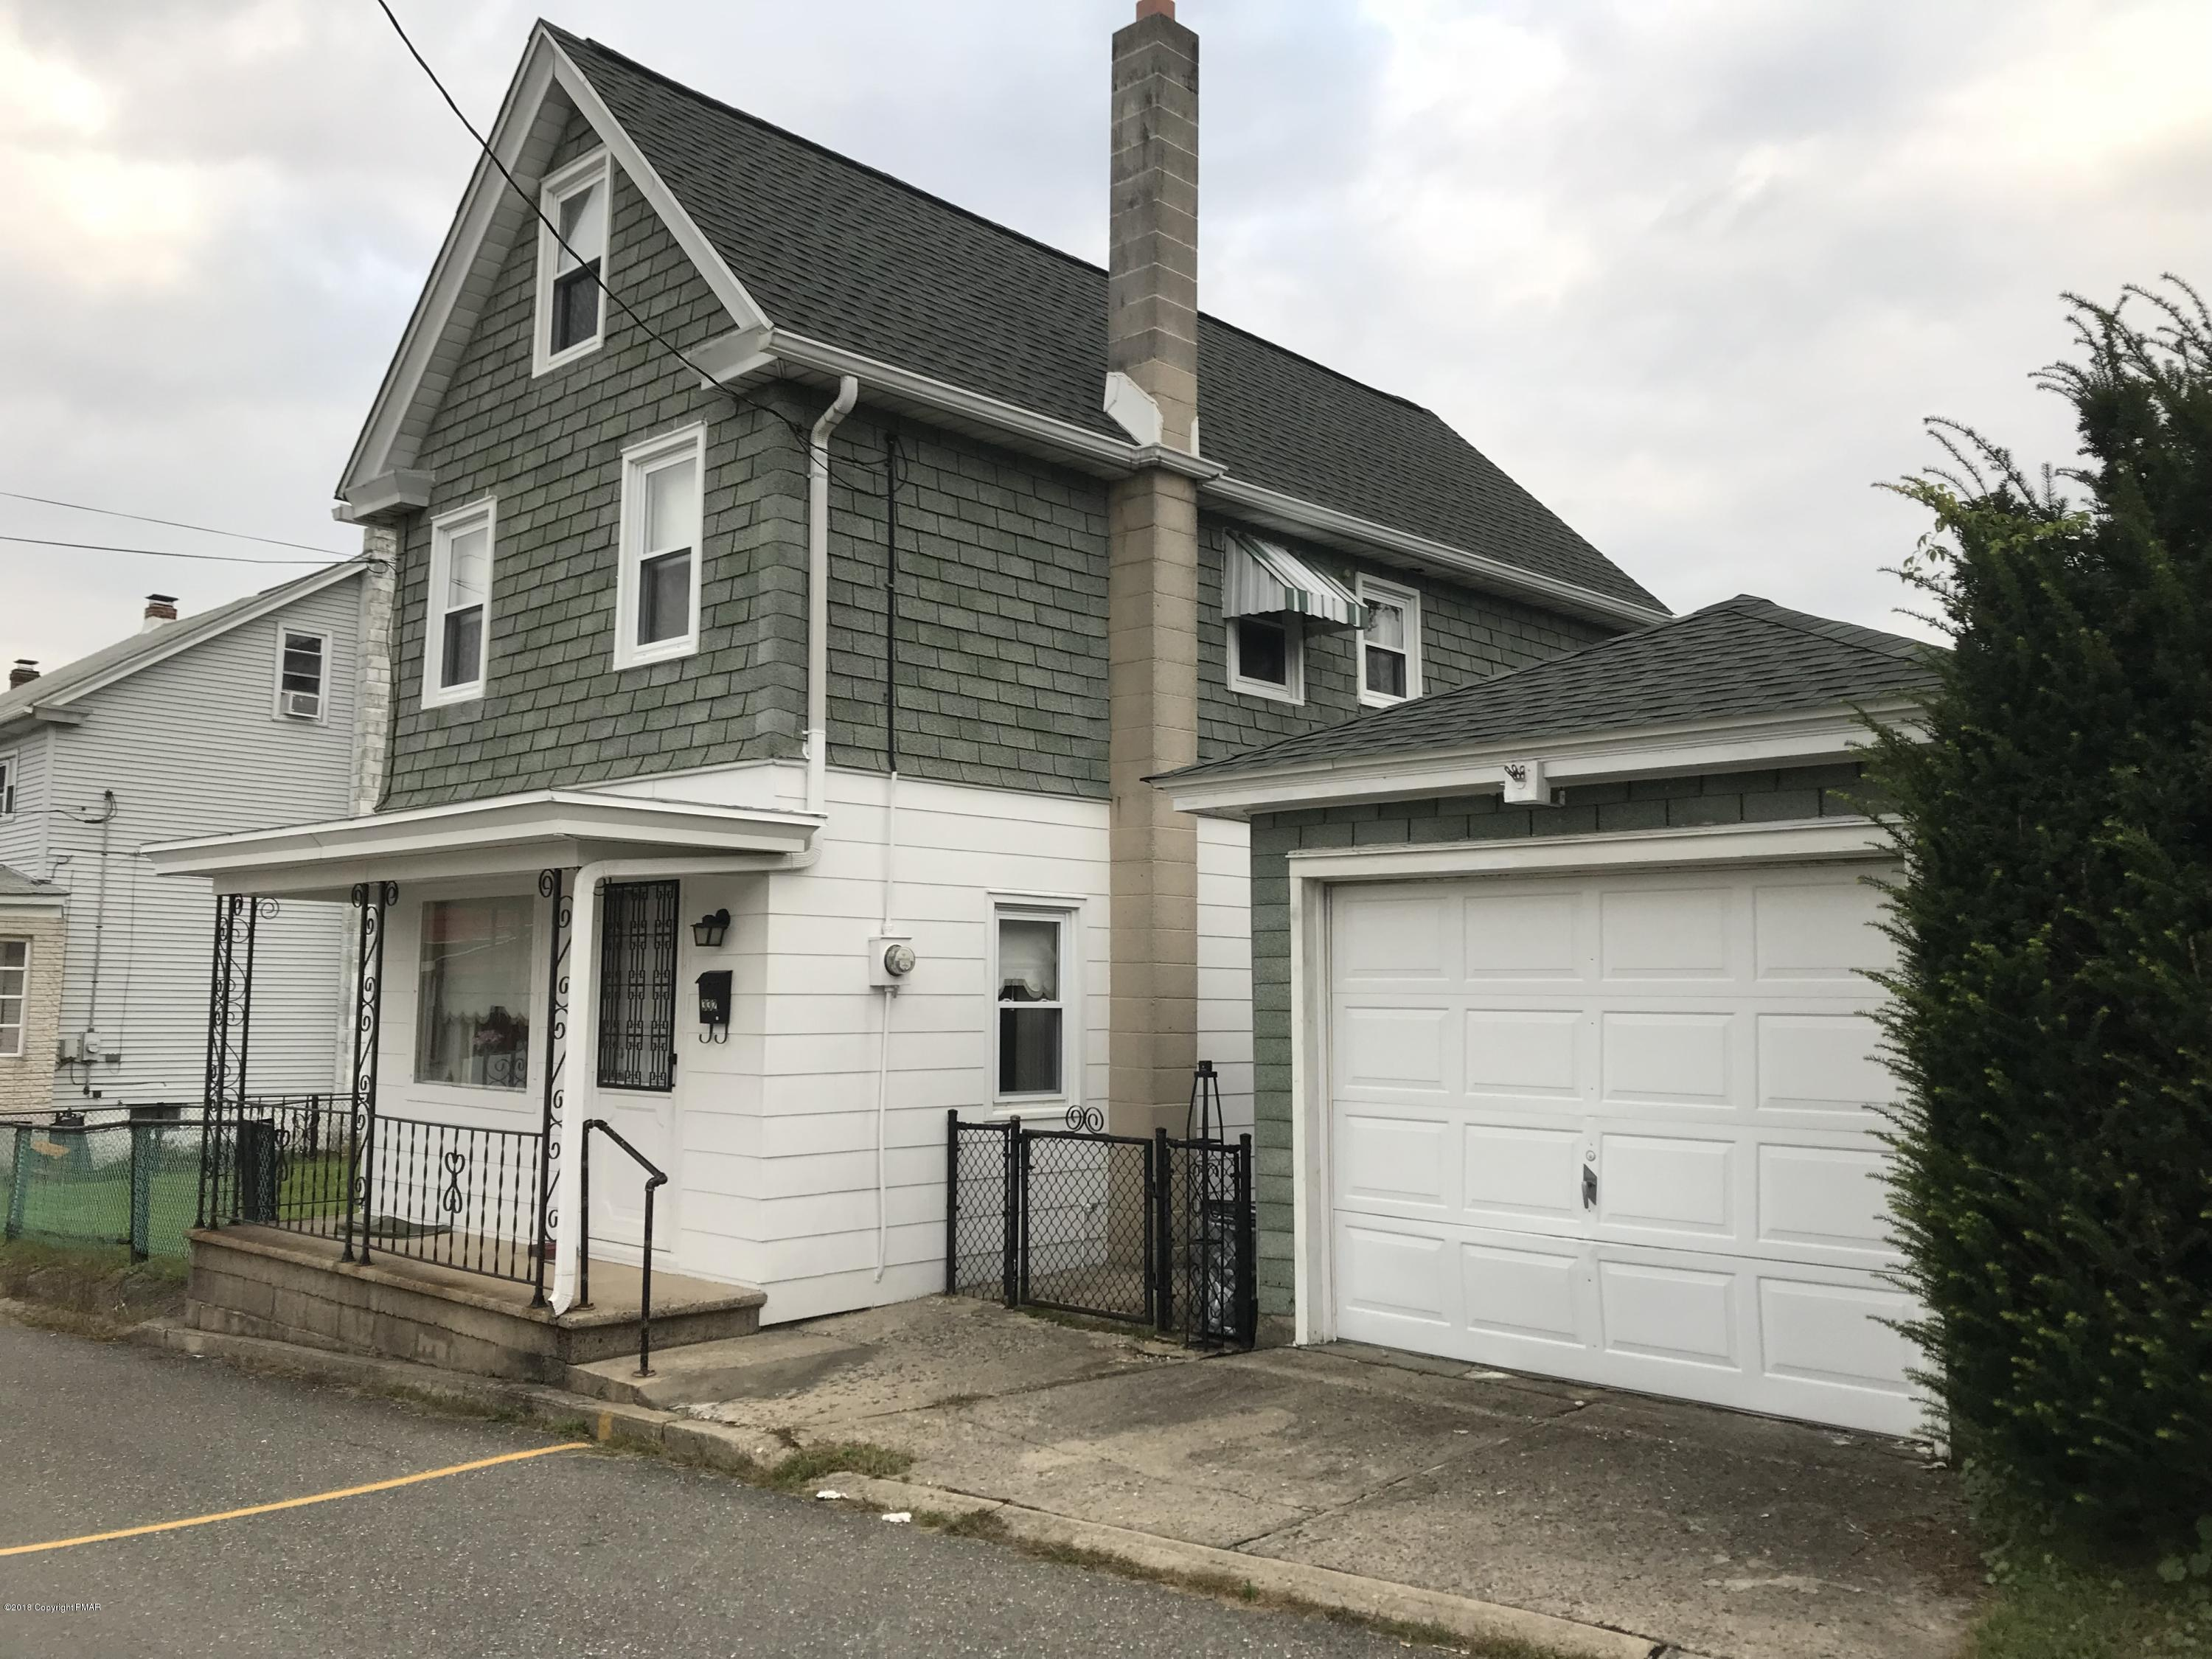 332 W Iron St, Summit Hill, PA 18250